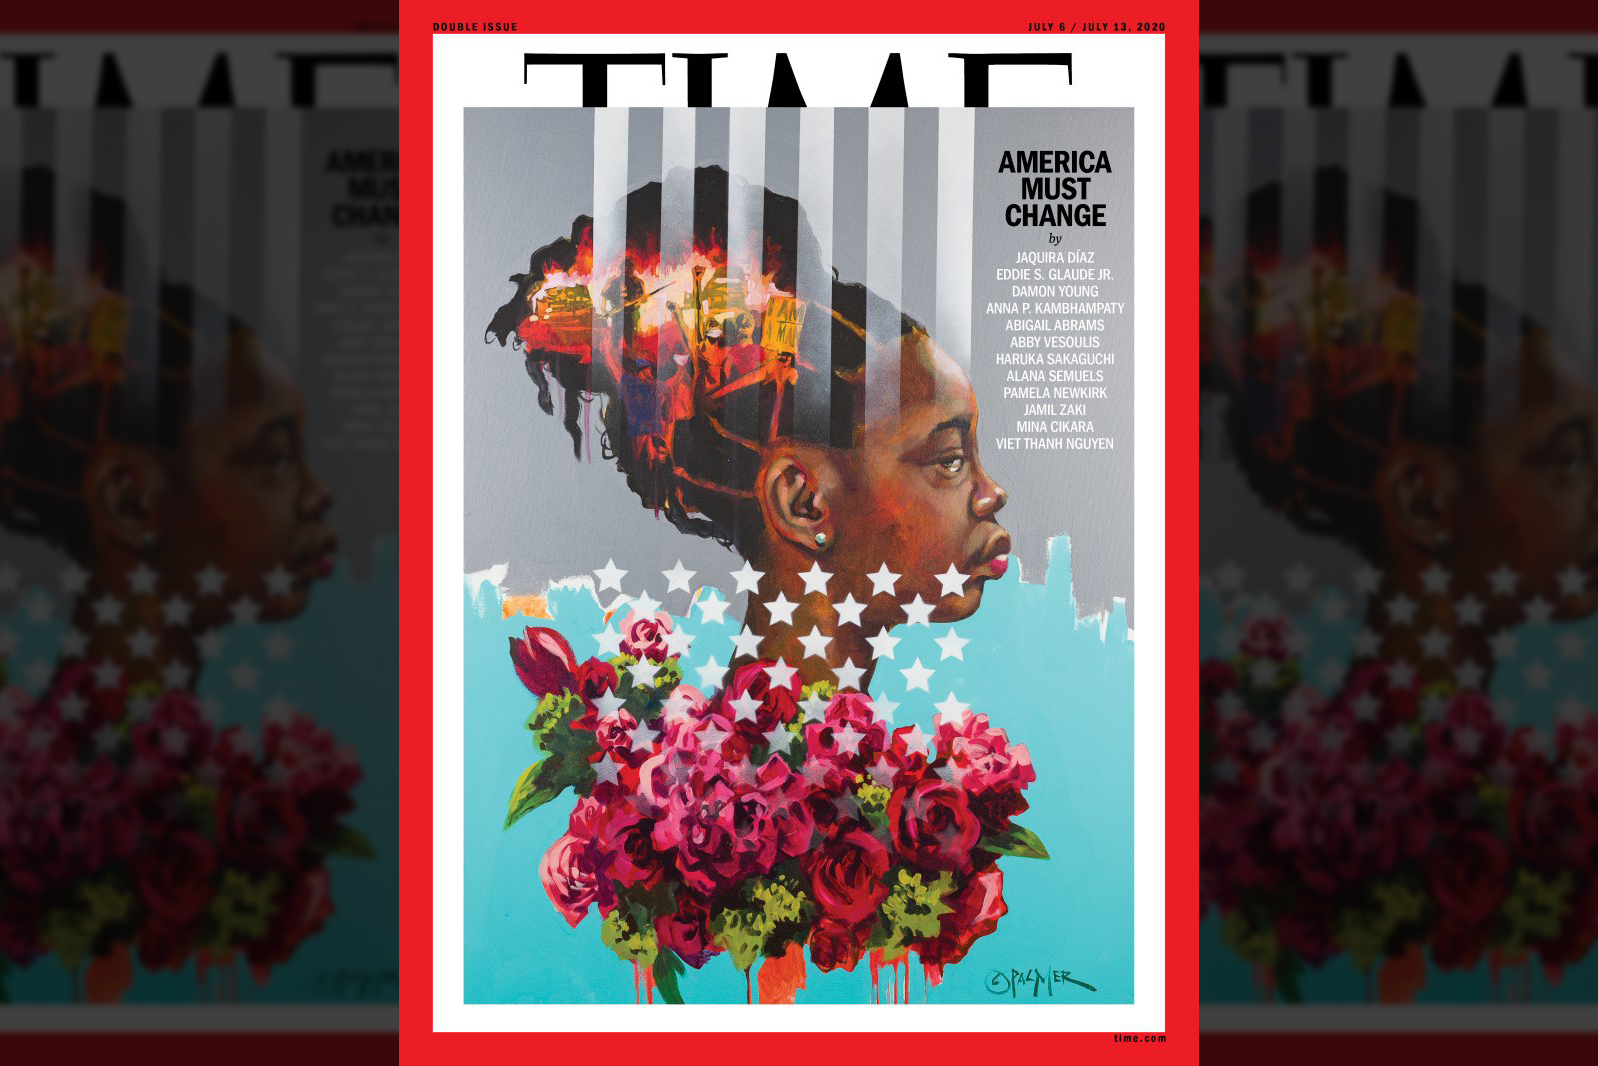 'America Must Change': The story behind Time's latest cover artwork